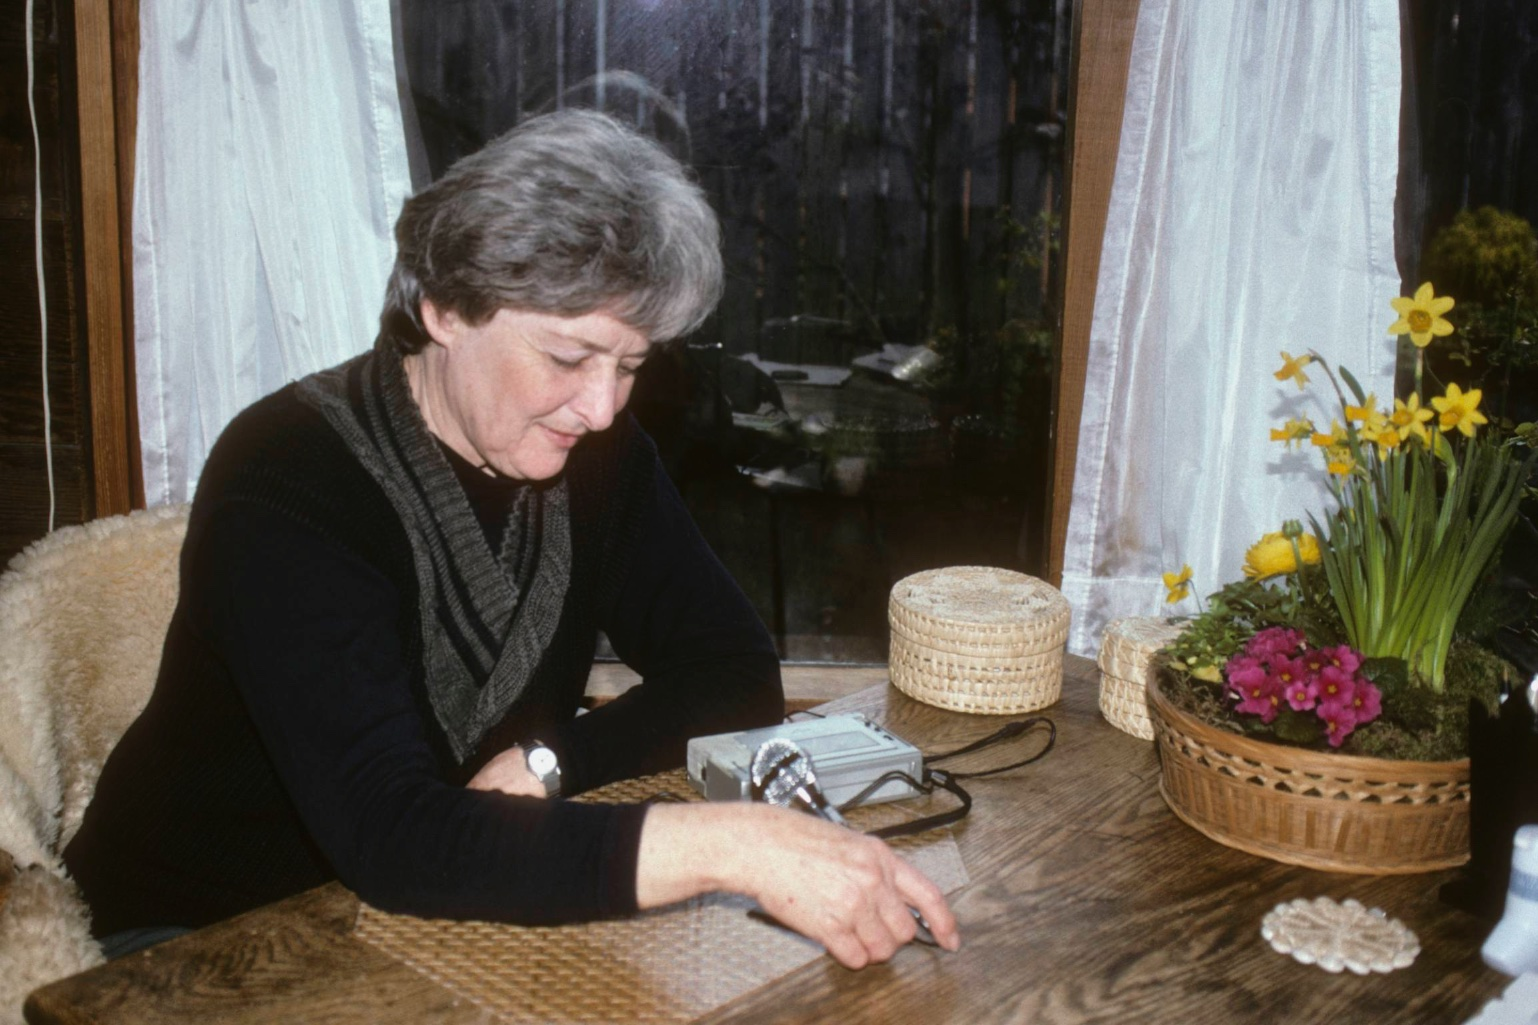 Joan Rutherford being interviewed by the author in her house in Washington. (Photo credit: DK Howe)